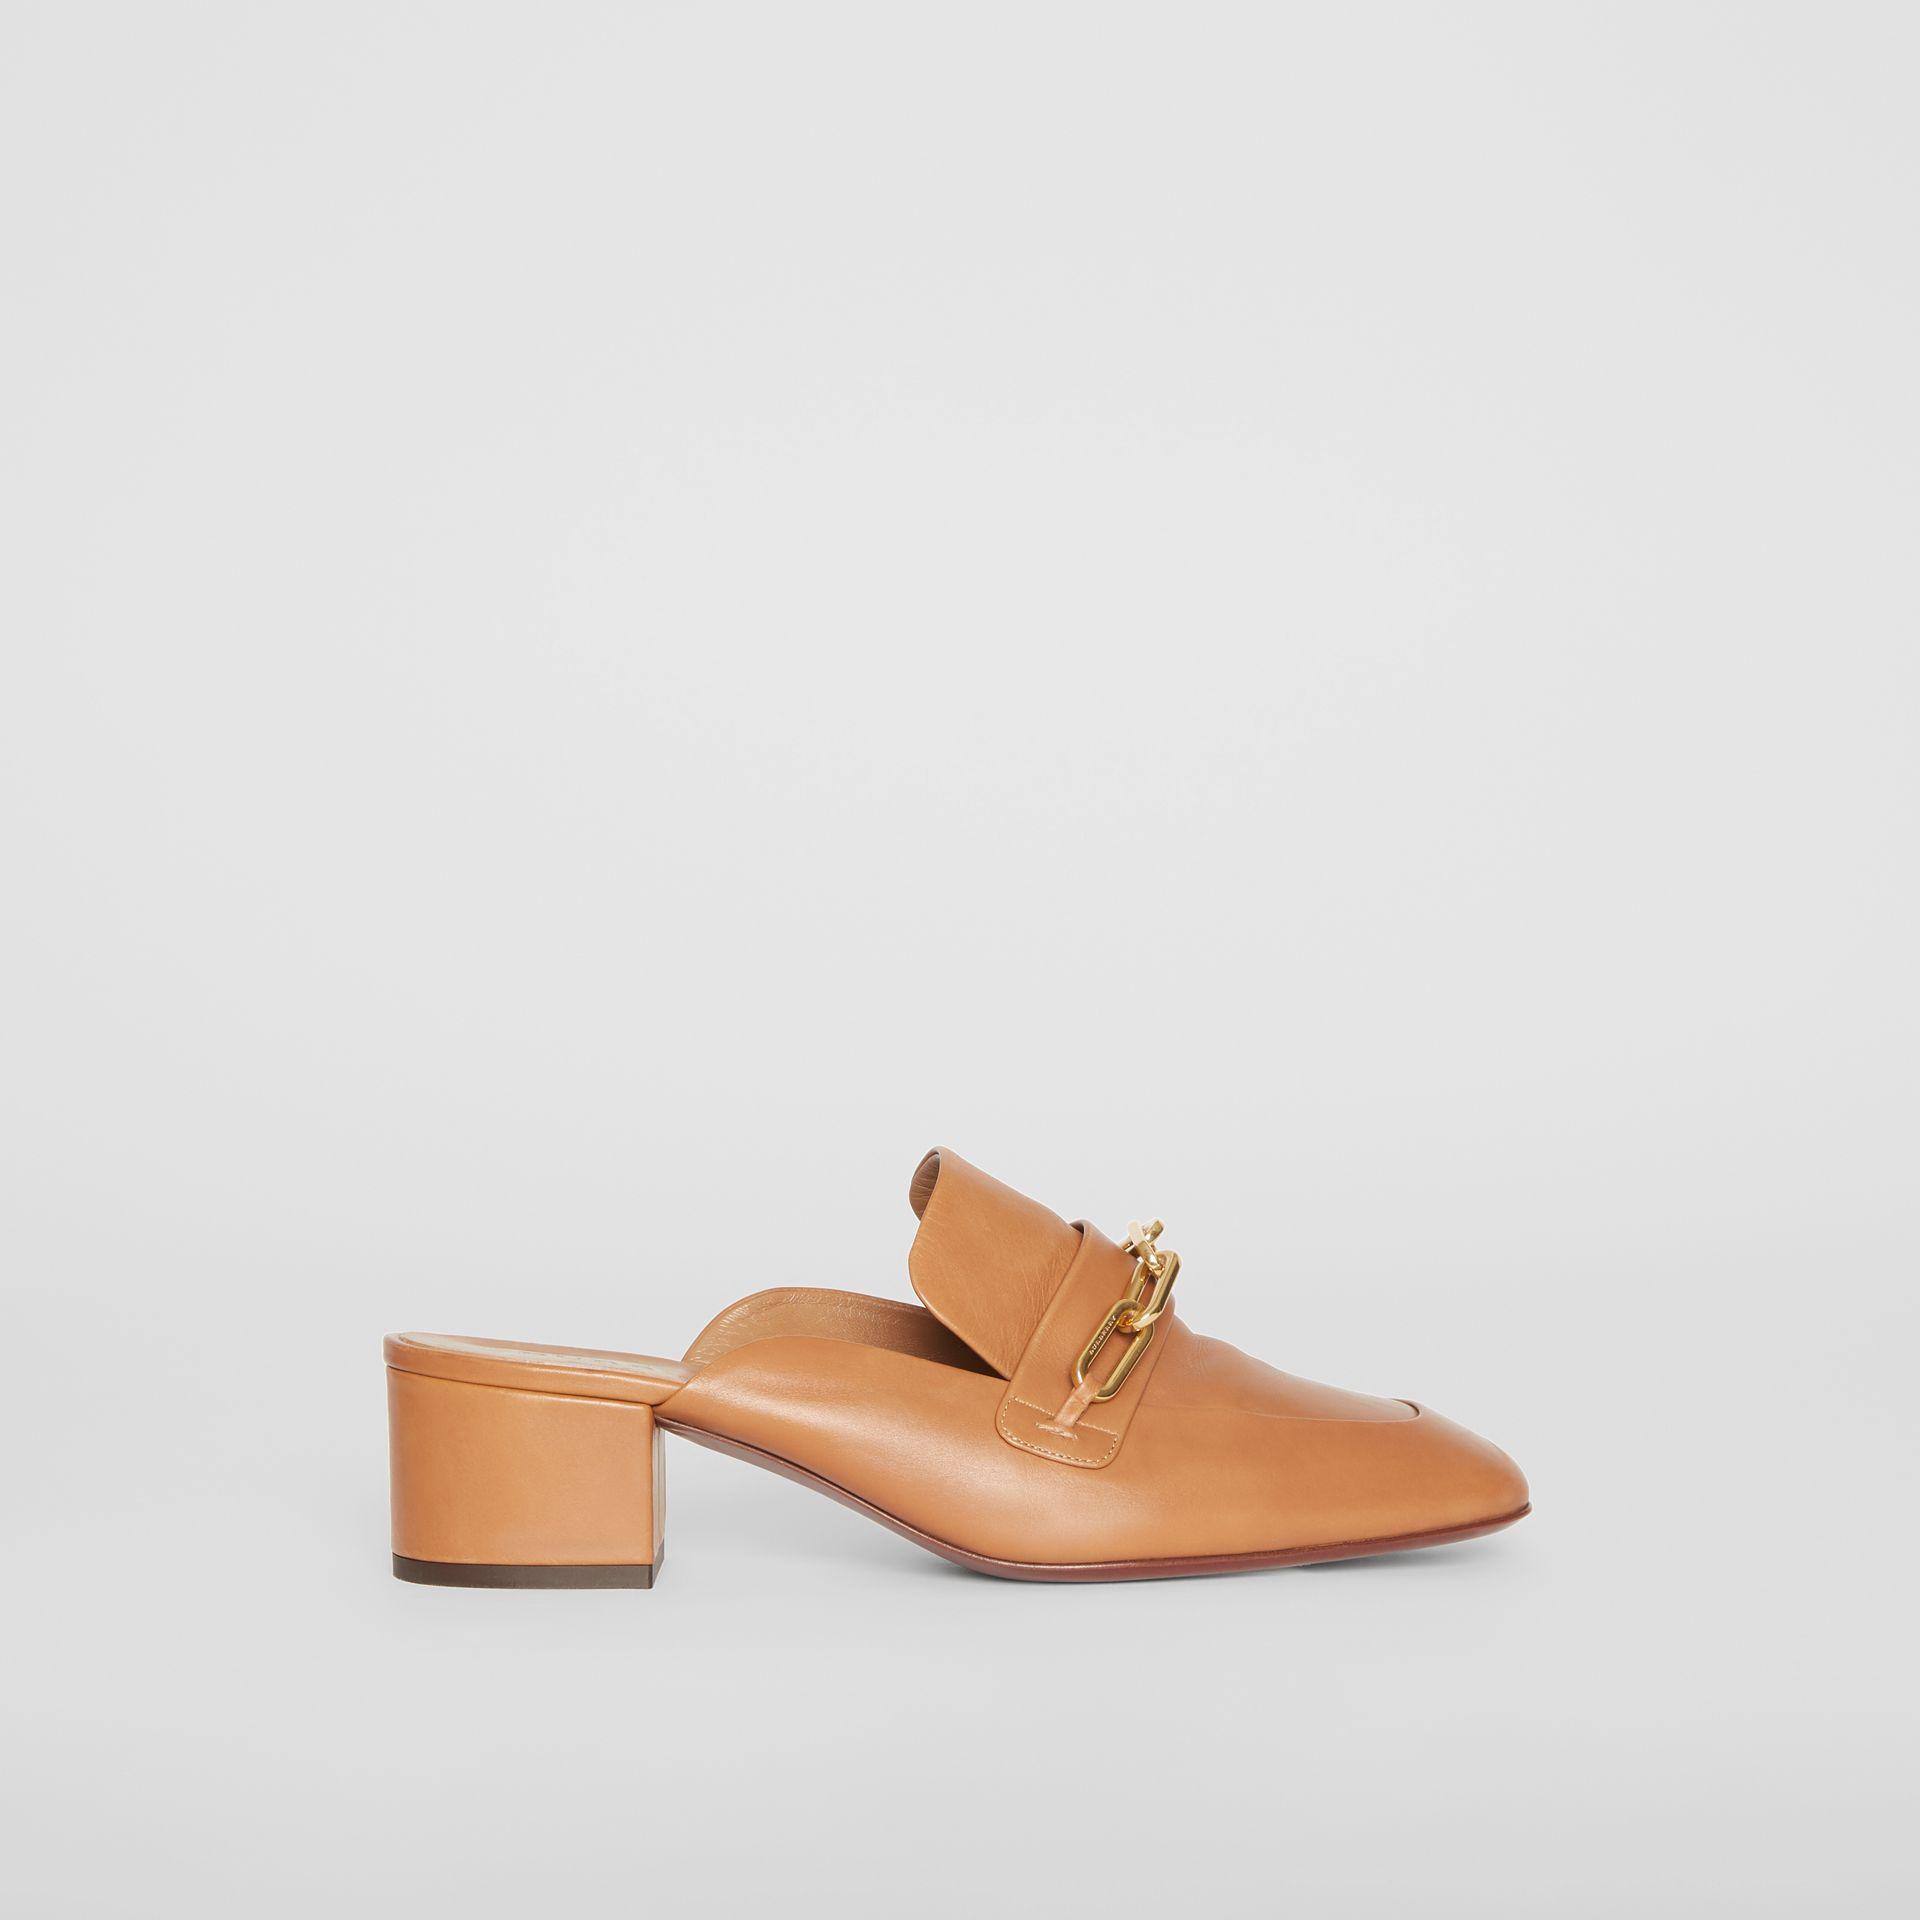 Link Detail Leather Block-heel Mules in Camel - Women | Burberry Canada - gallery image 5